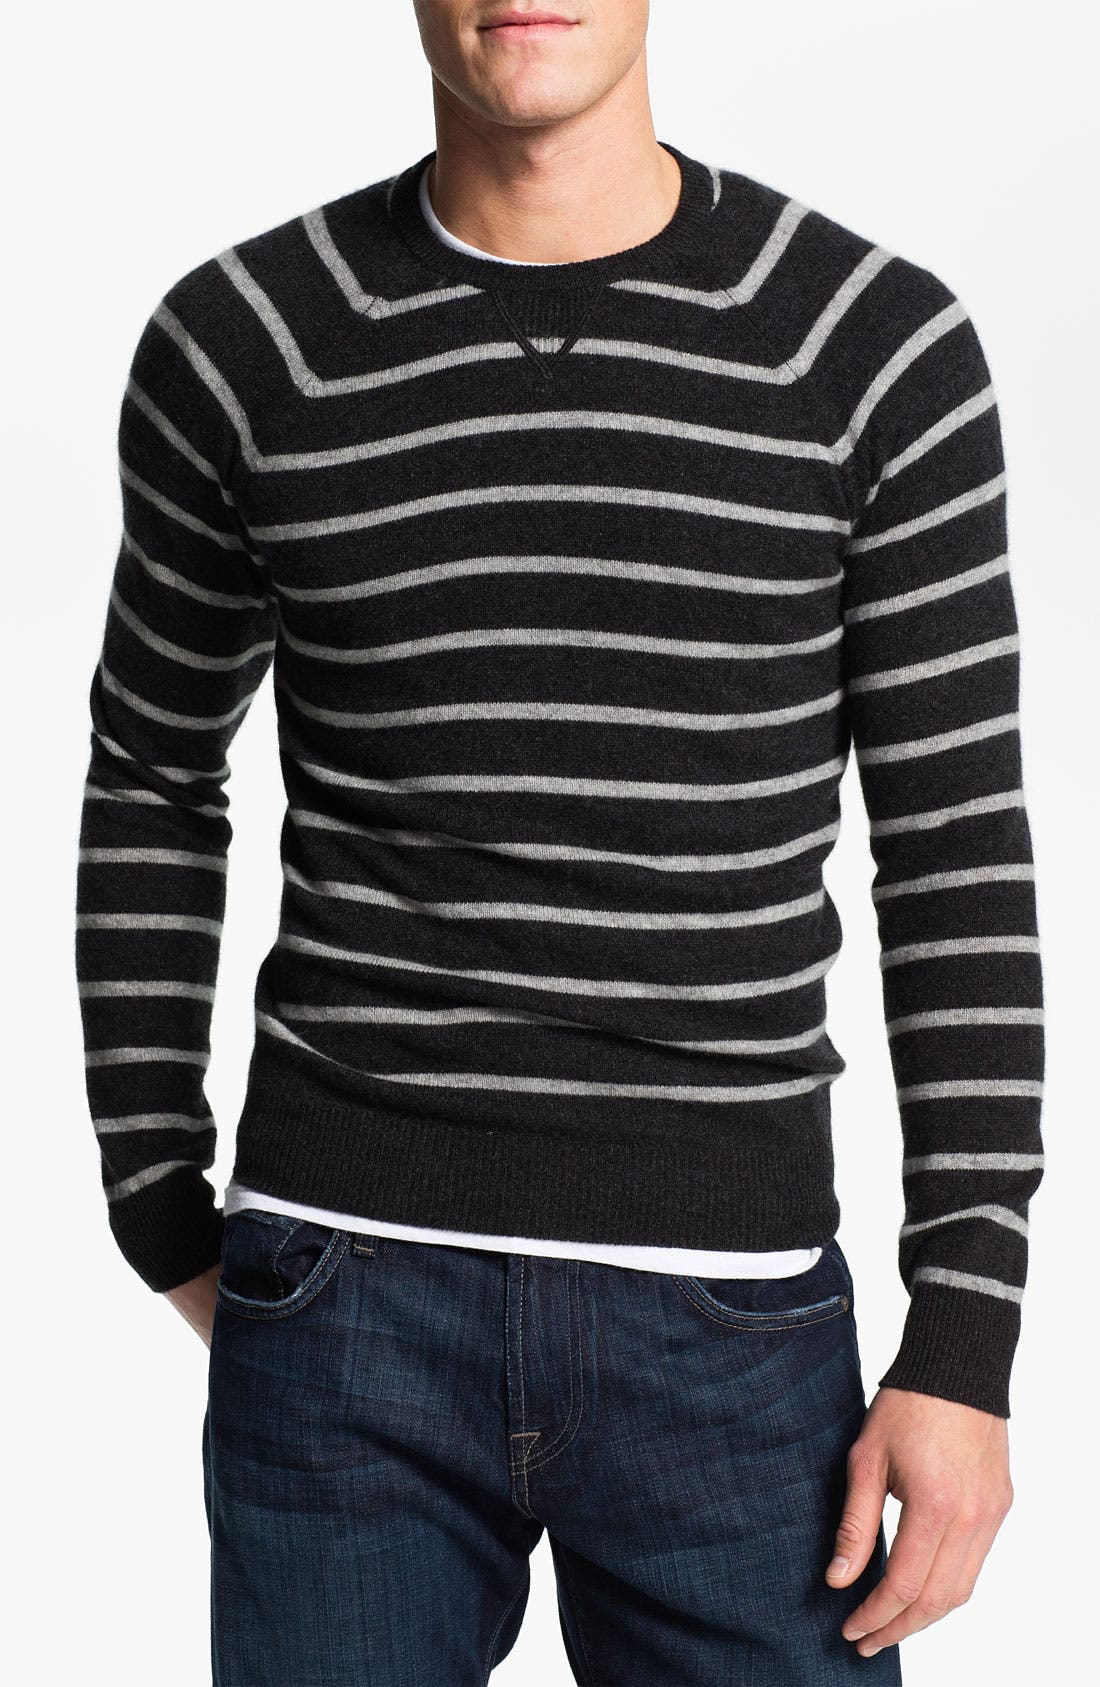 Main Image - 1901 Stripe Cashmere Sweater